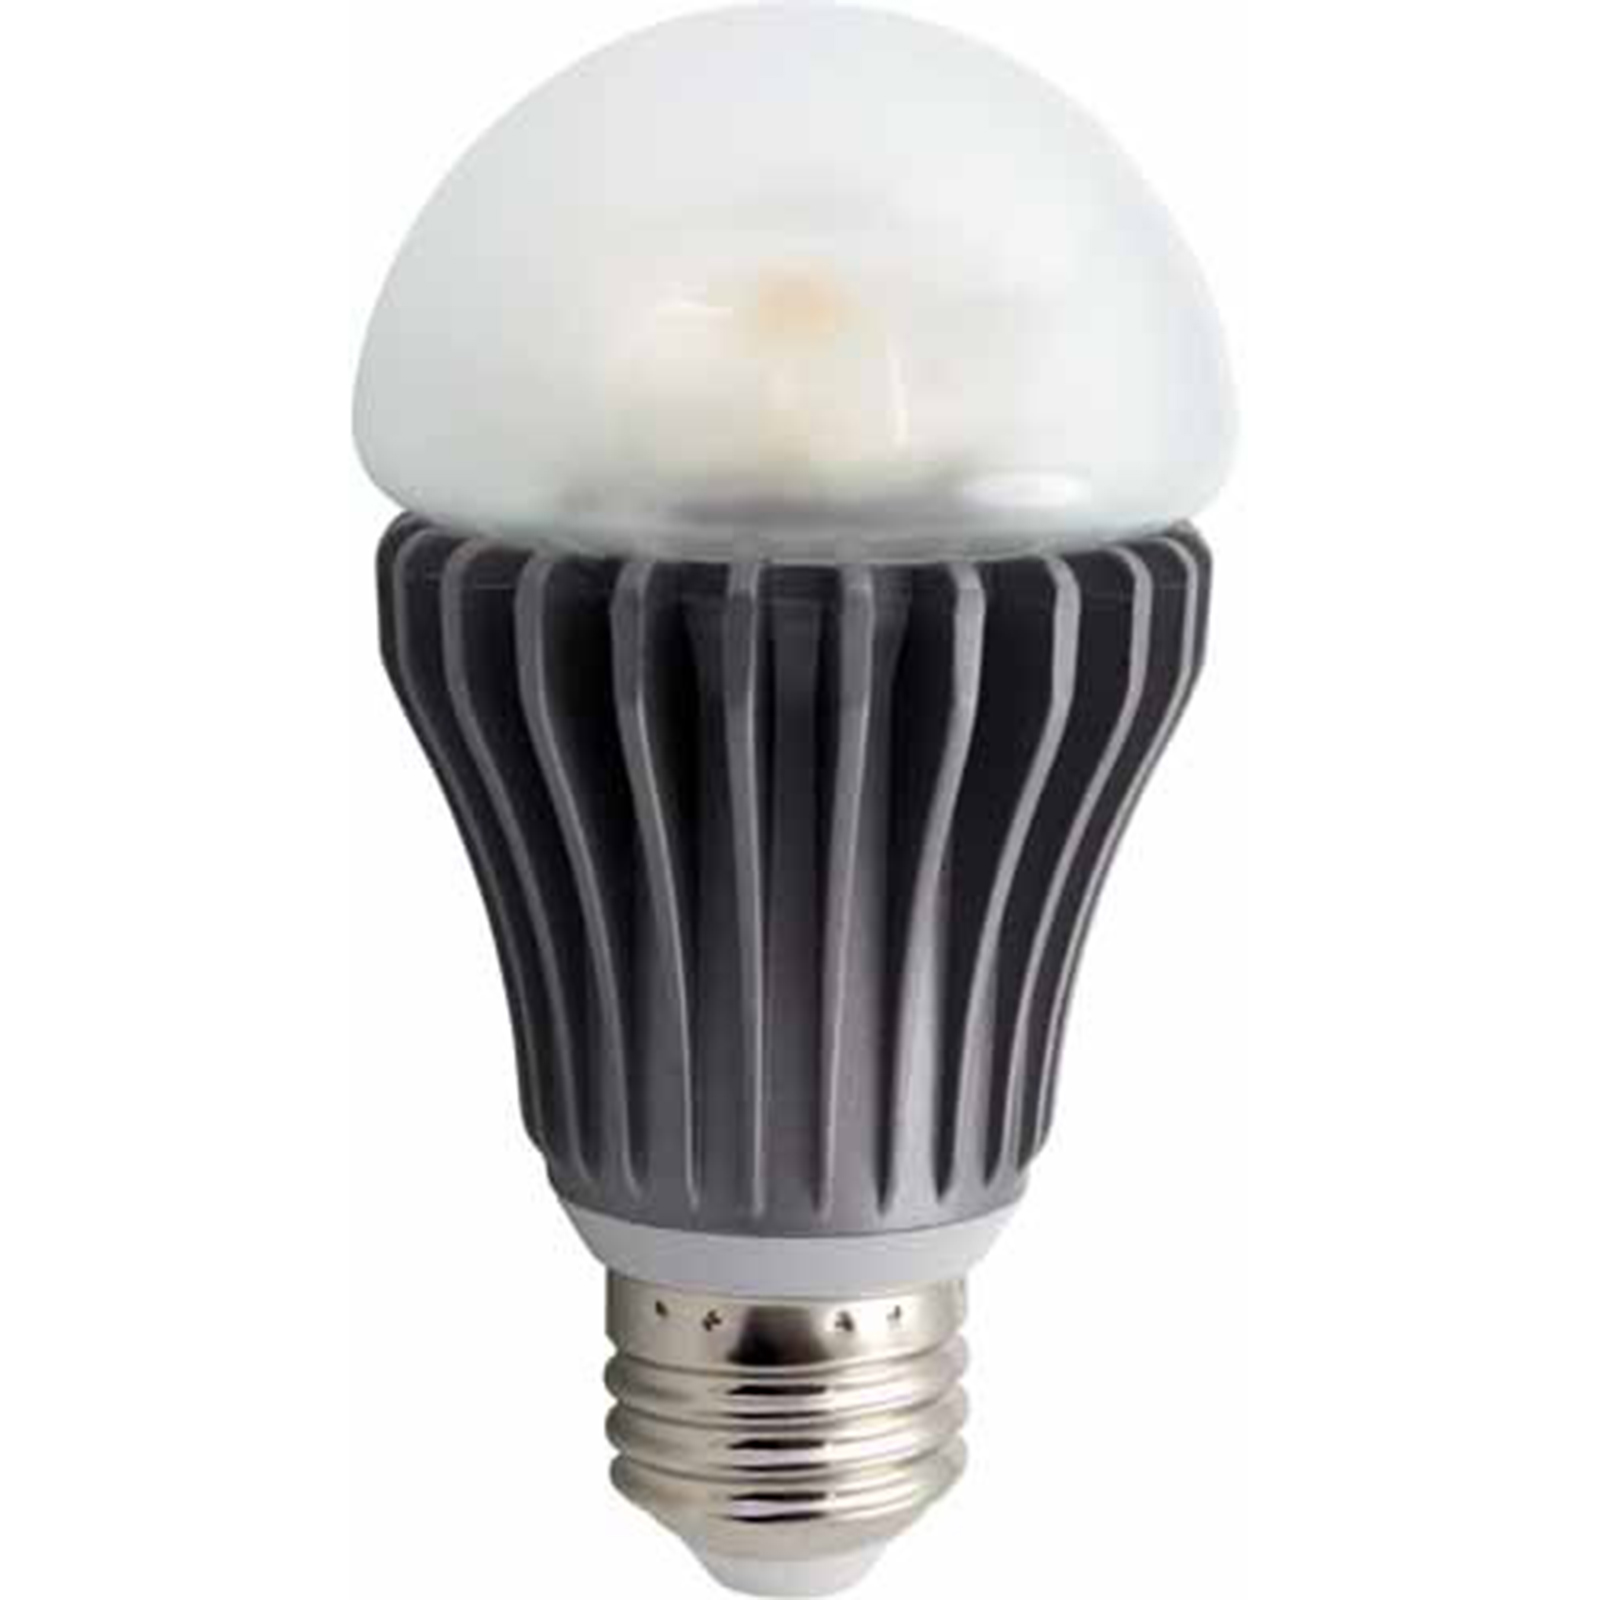 Energy efficient outdoor light bulbs democraciaejustica fusion lamps 3000k a19 energy efficient indoor outdoor 8w aloadofball Gallery